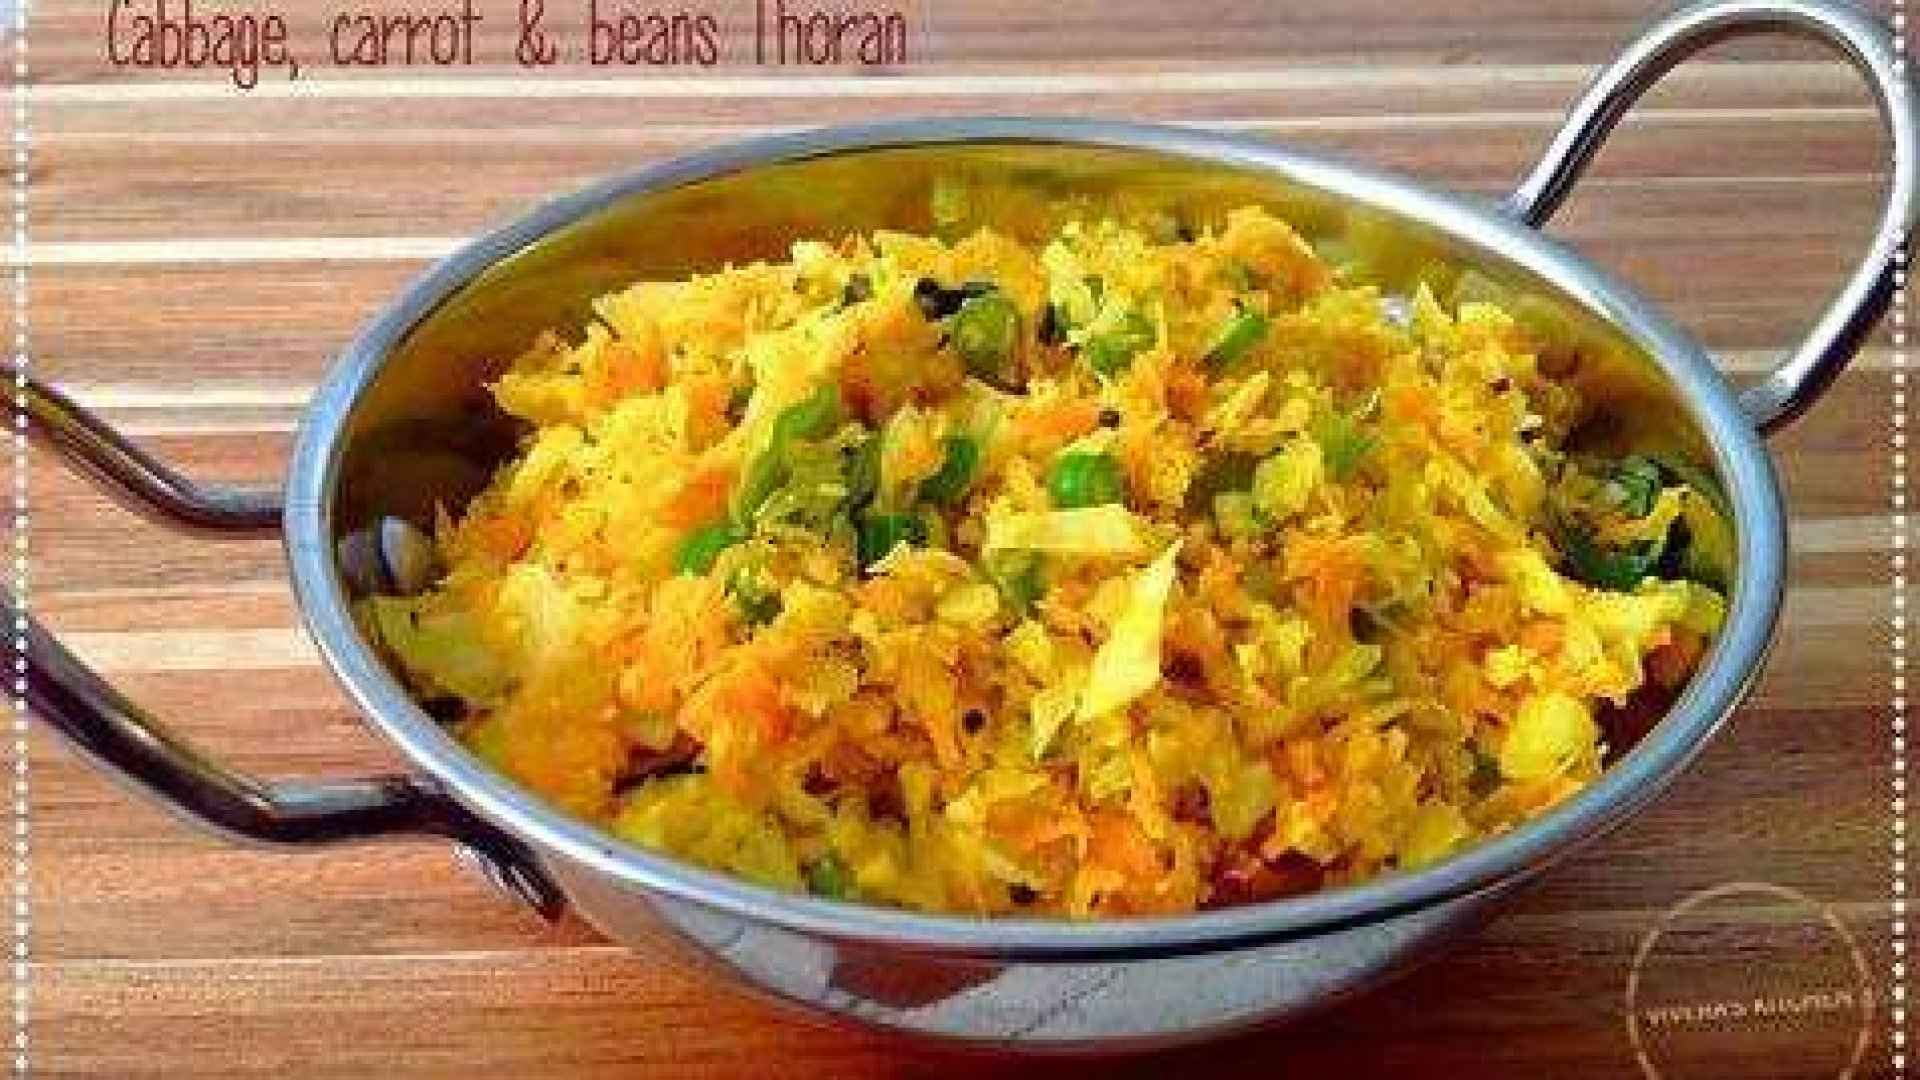 CABBAGE, CARROT & BEANS THORAN